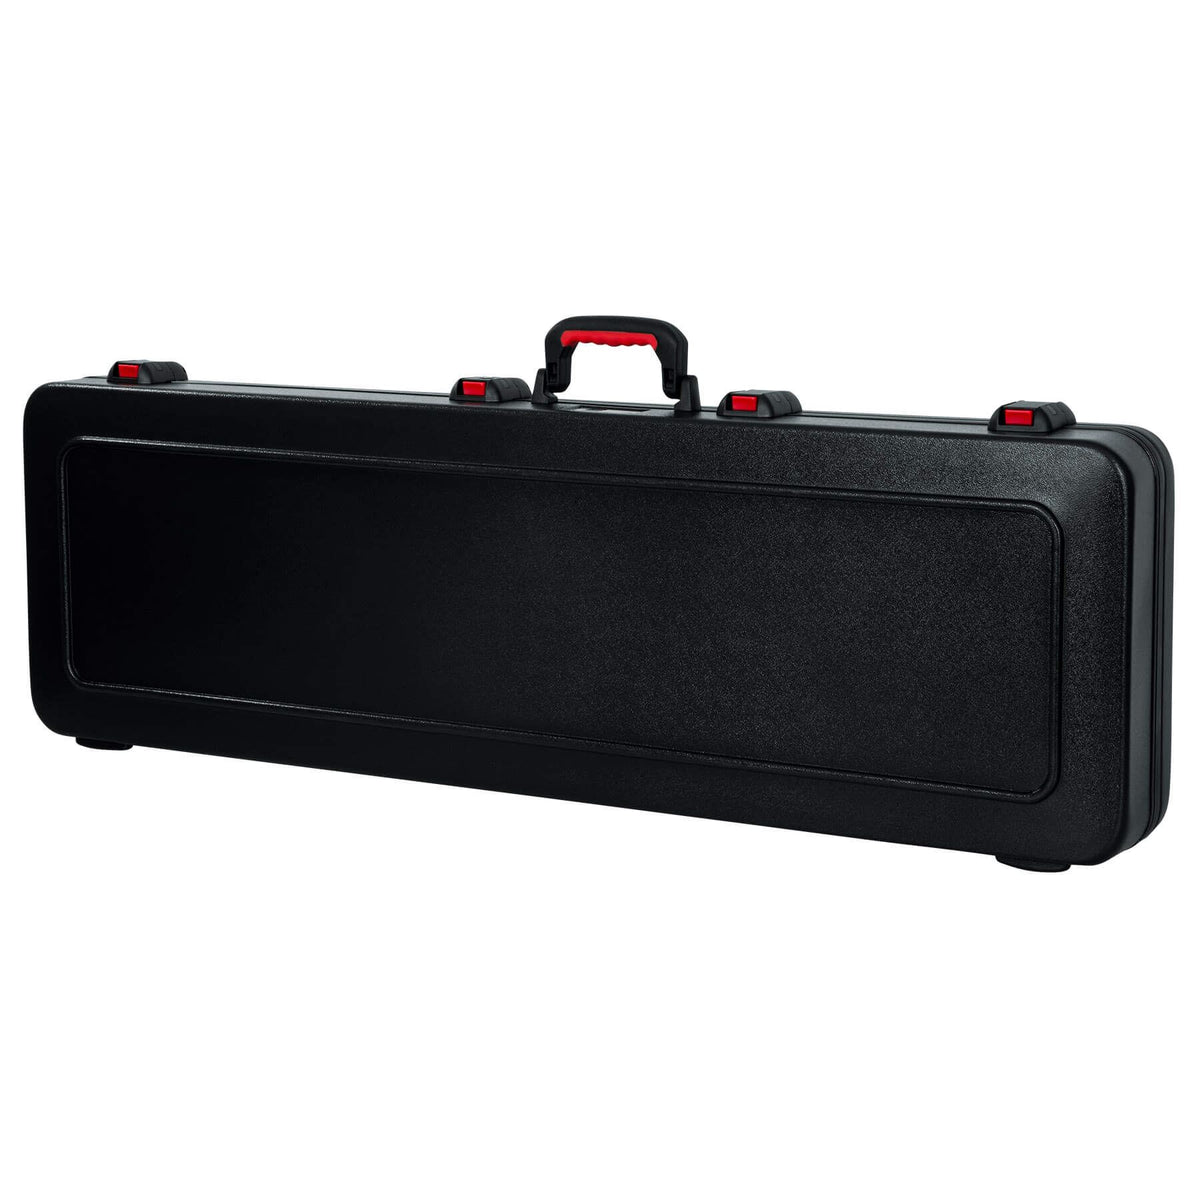 Gator ATA Bass Guitar Case fits Fender Reggie Hamilton Jazz Bass